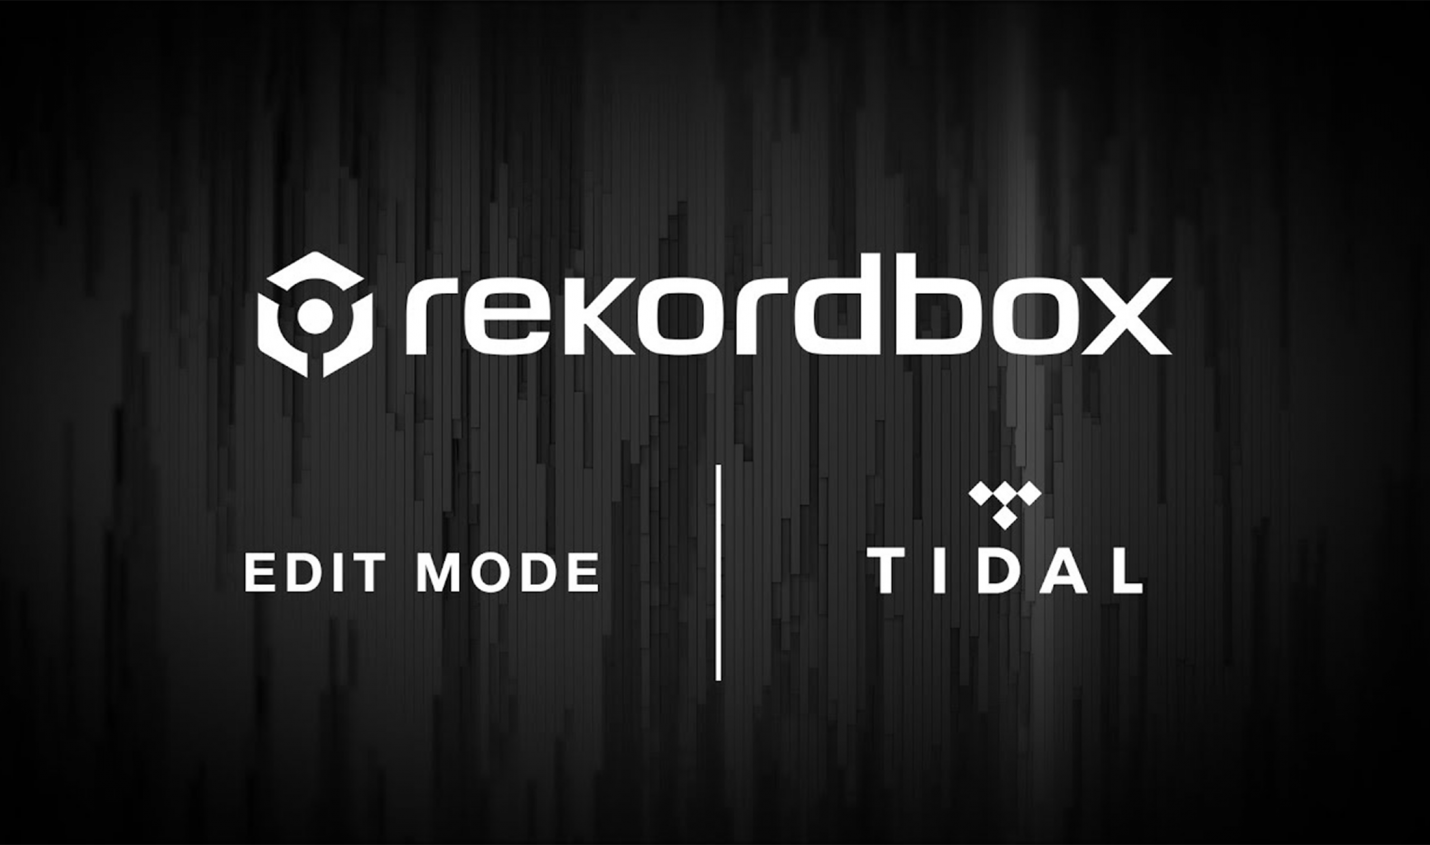 Neuer Edit-Modus und TIDAL Streaming in Rekordbox 6.1.1